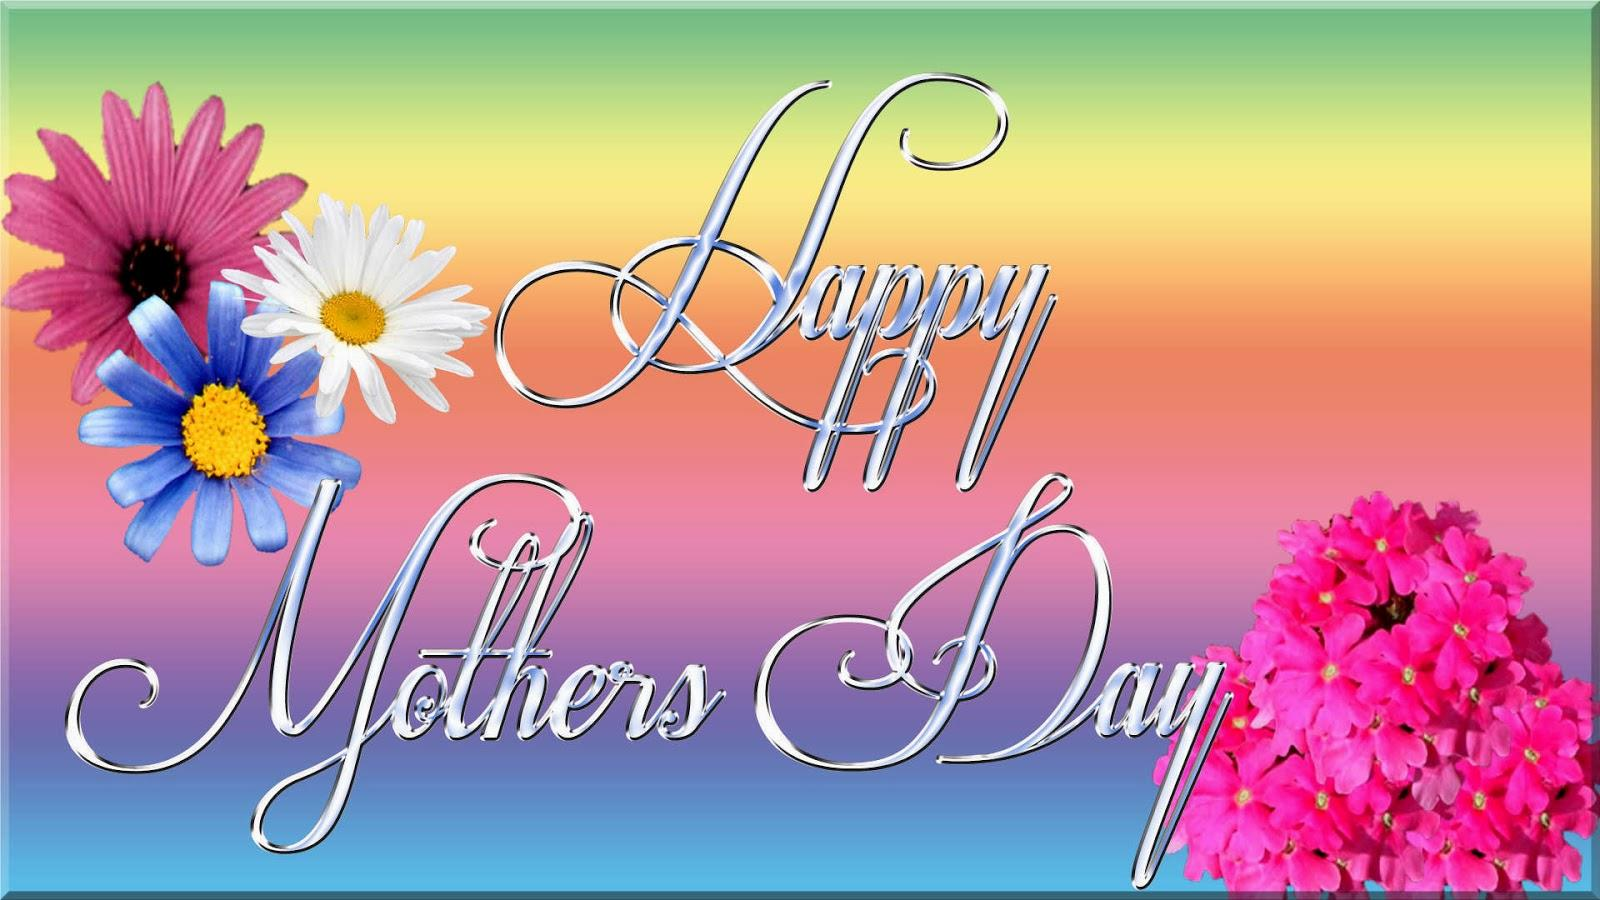 Happy Mothers Day Wallpaper HD